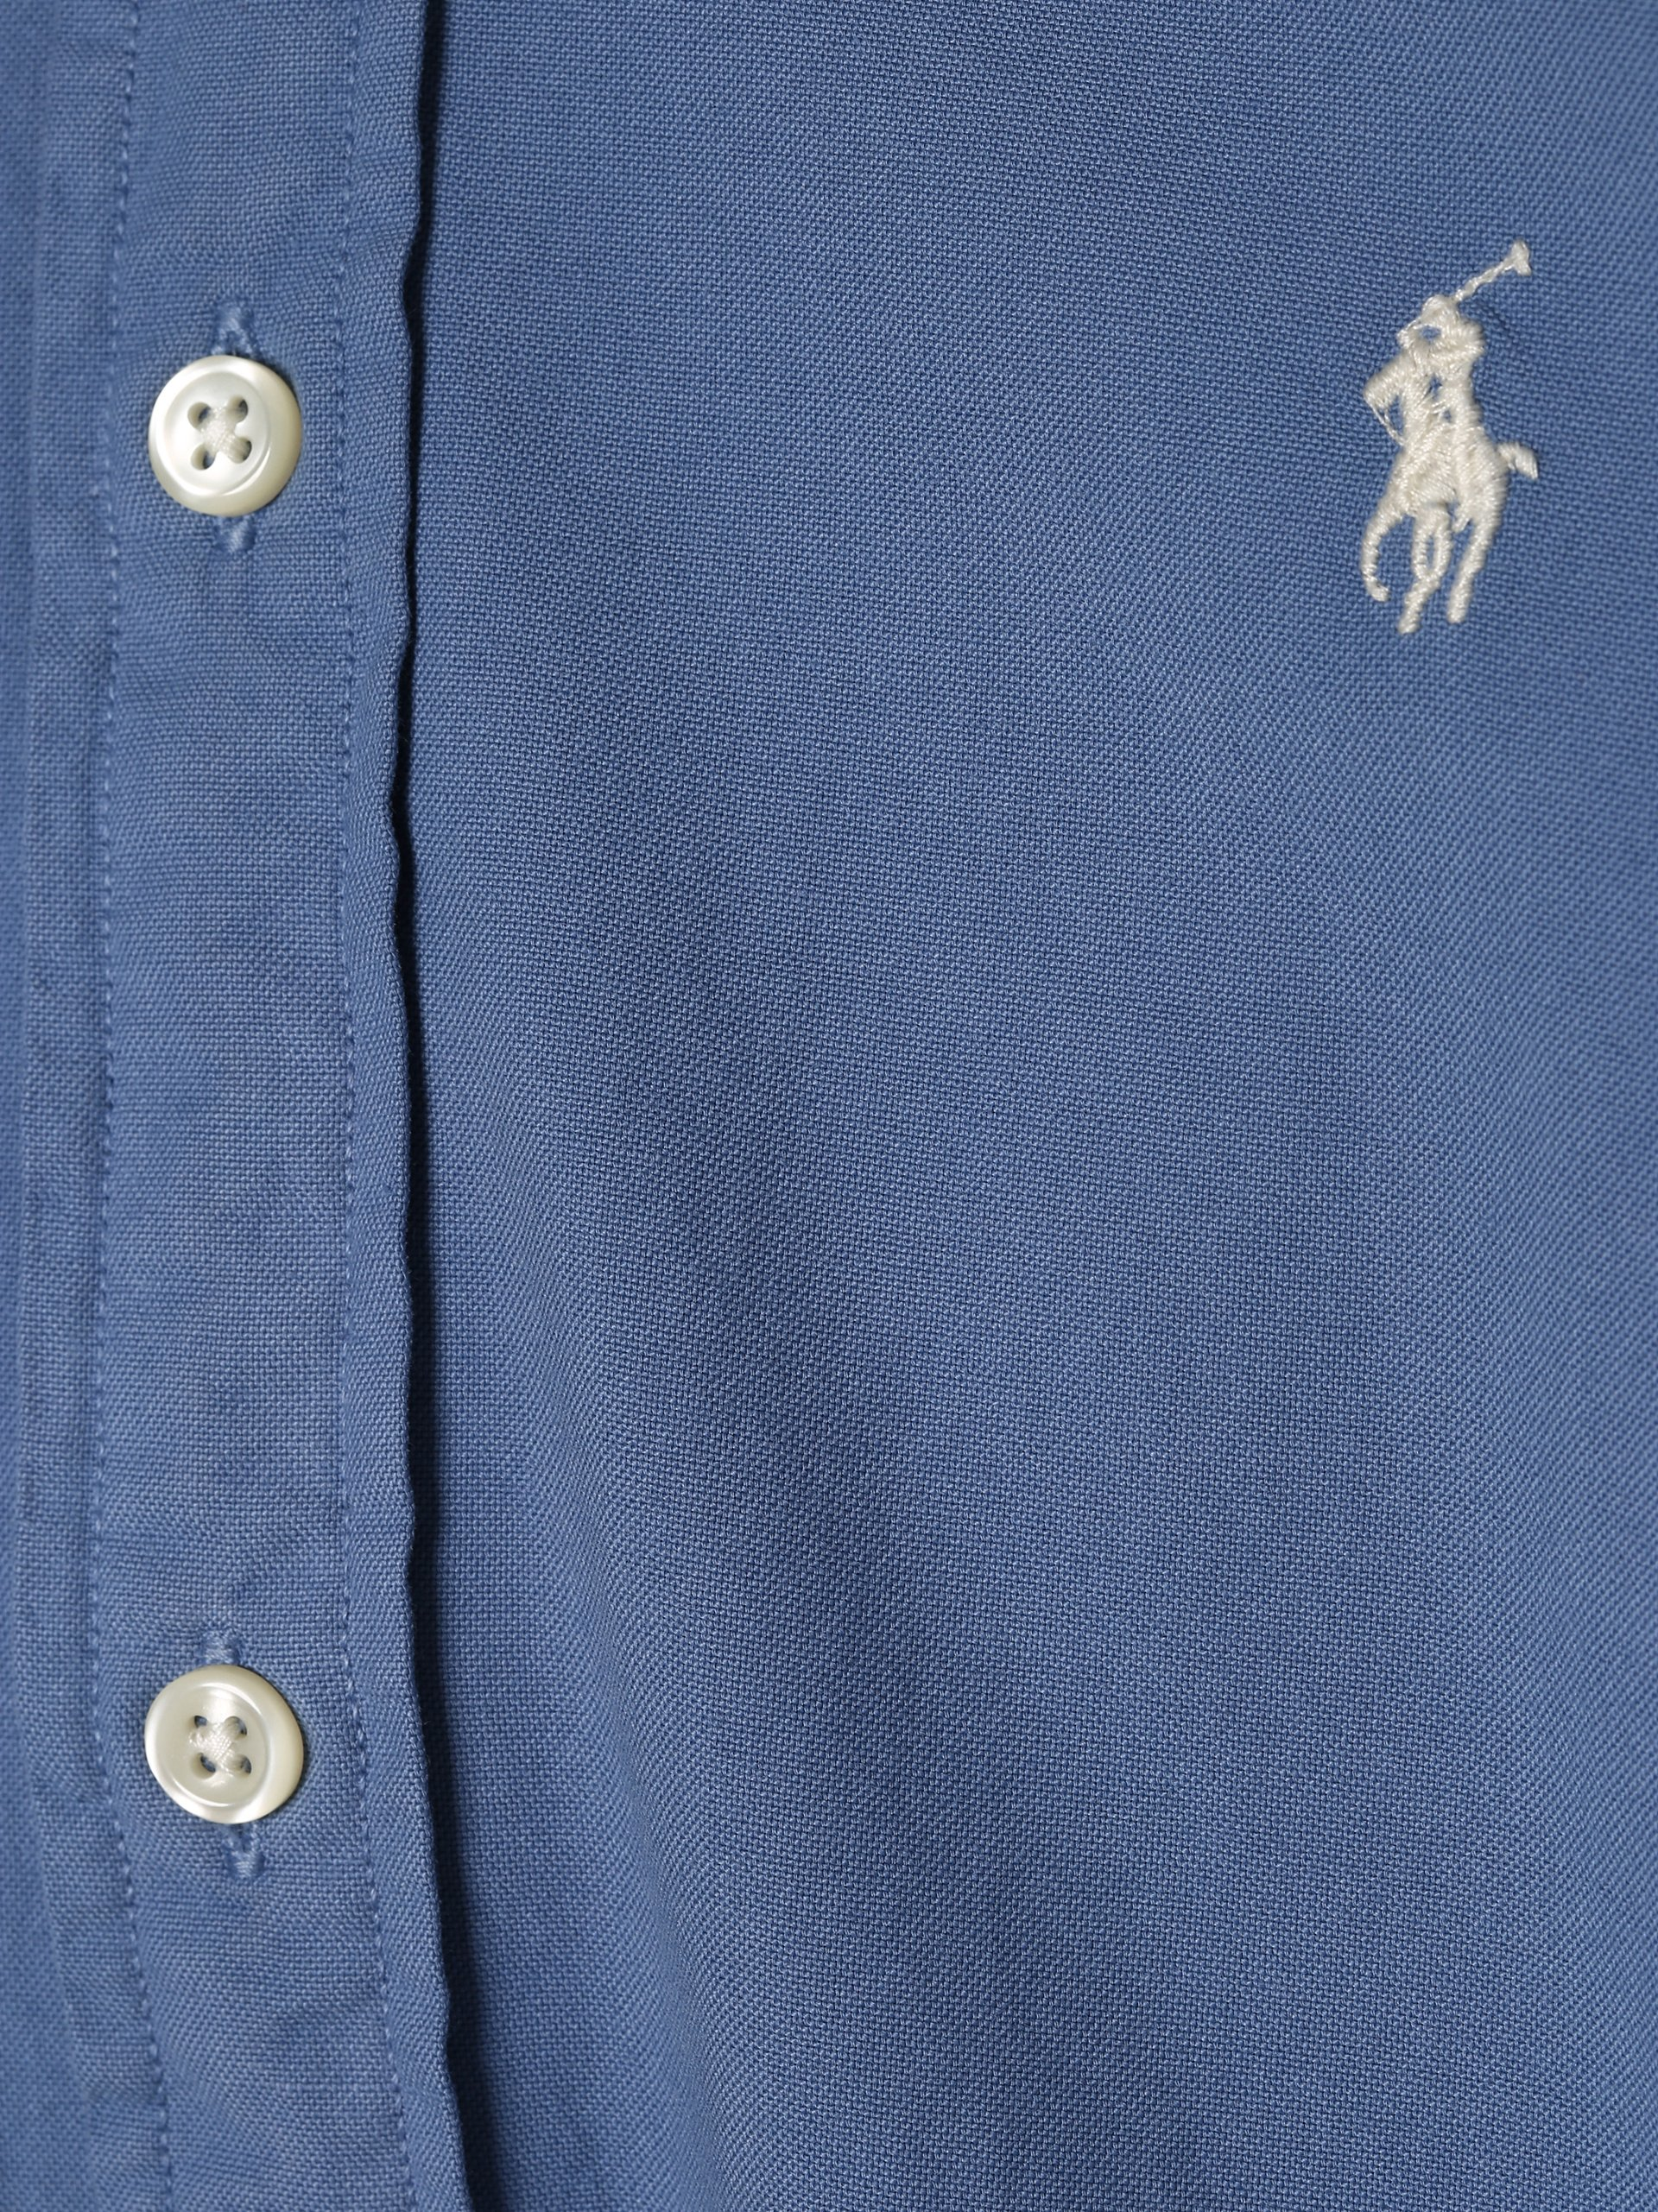 Polo Ralph Lauren Damen Bluse - Relaxed Fit